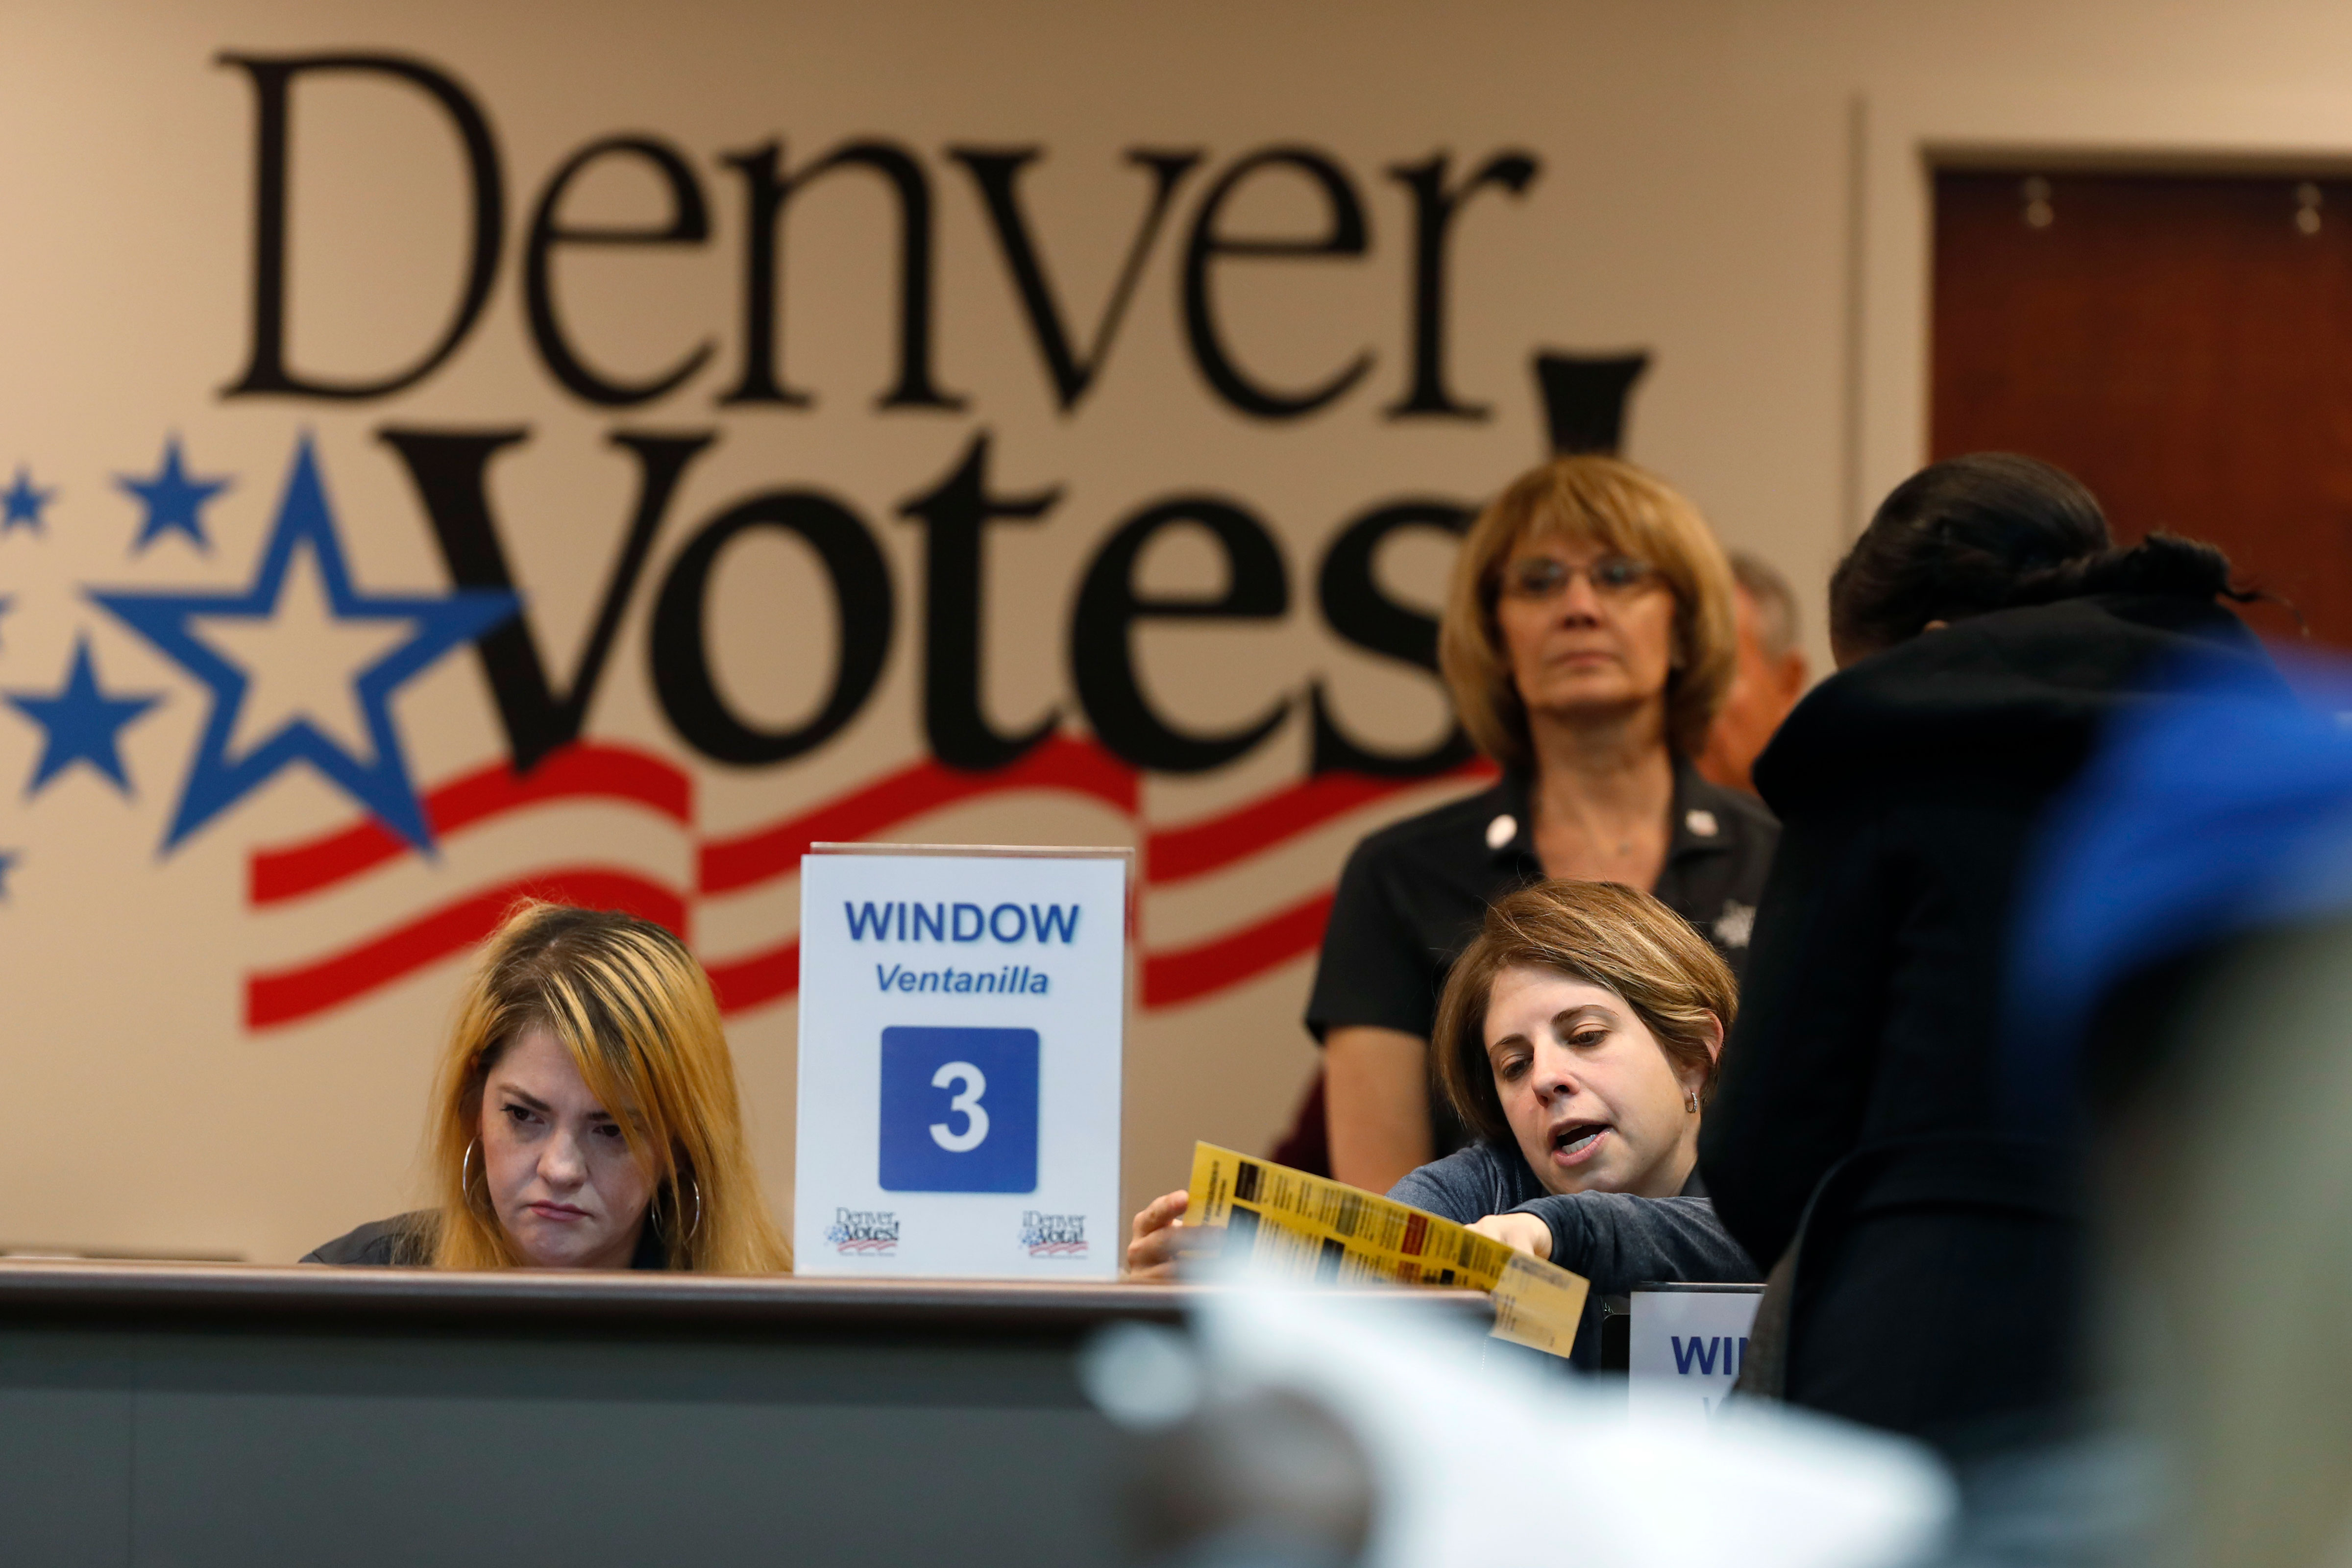 <p>An election judge helps a voter with a question about the ballot at the Denver Elections Division Tuesday, Nov. 6, 2018, in Denver.</p>